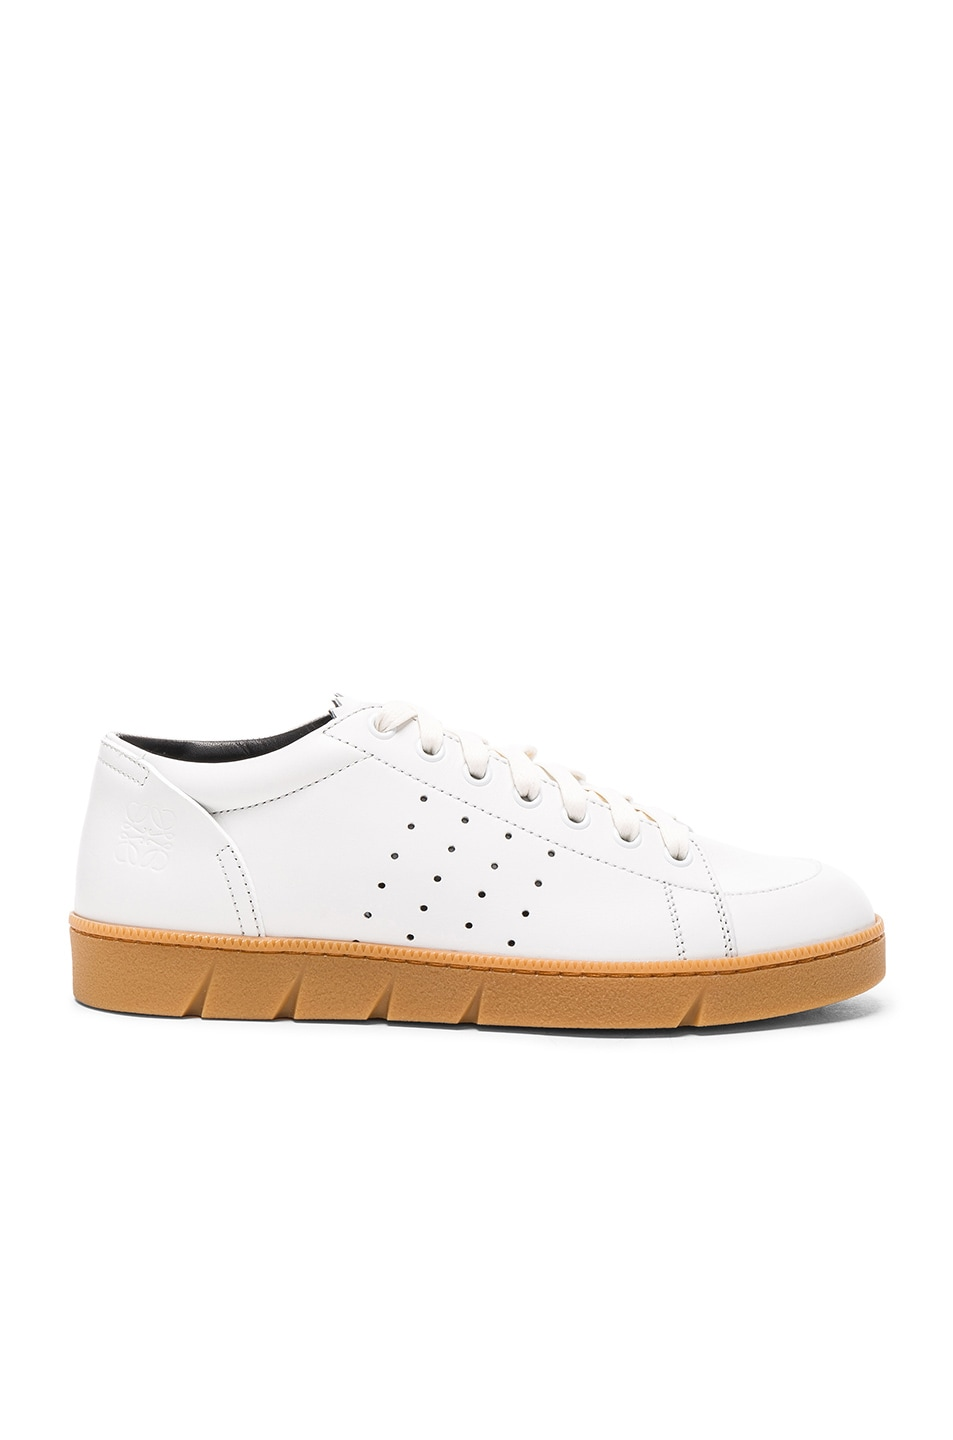 Image 1 of Loewe Leather Sneakers in White